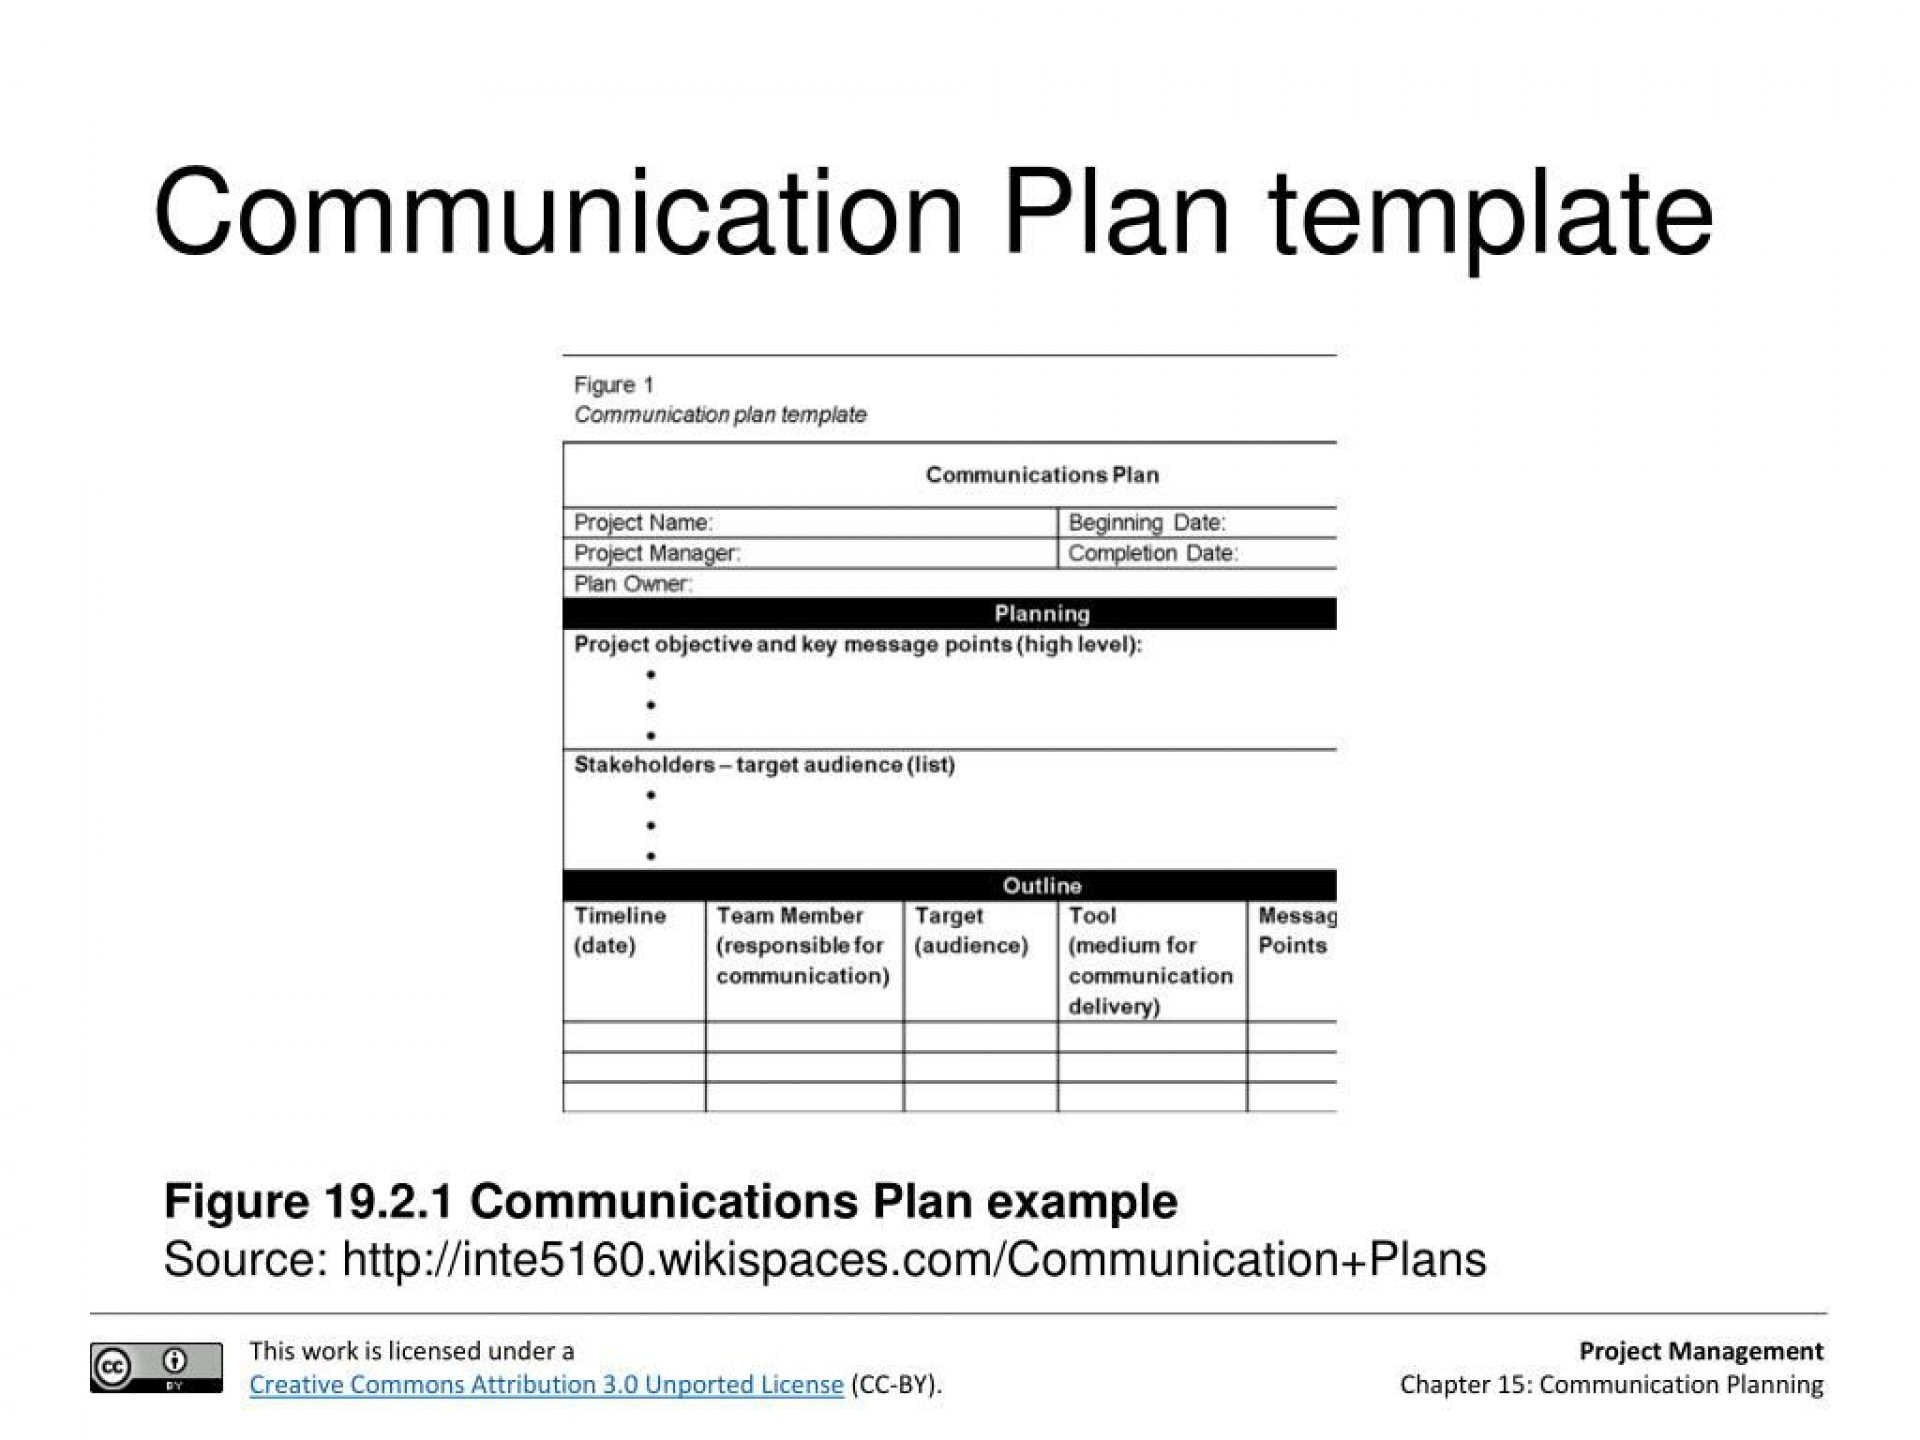 005 Formidable Project Communication Plan Template Design  Pmbok Pdf Excel Free1920